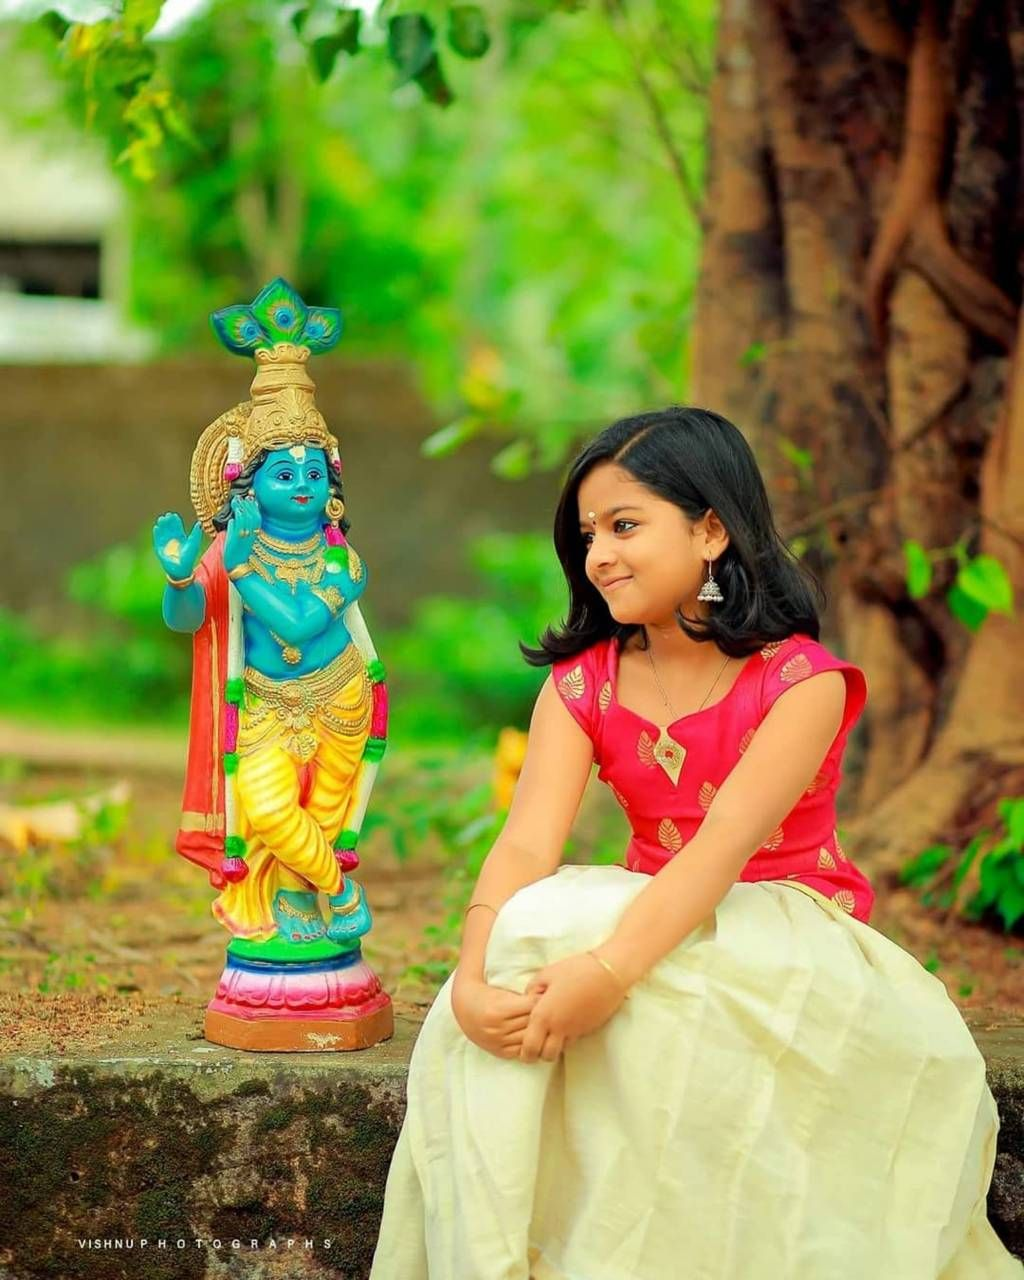 Download Happy Vishu Wallpaper By Gurusad 1e Free On Zedge Now Browse Millions Of Popul Child Photography Girl Cute Kids Photography Beautiful Girl Photo